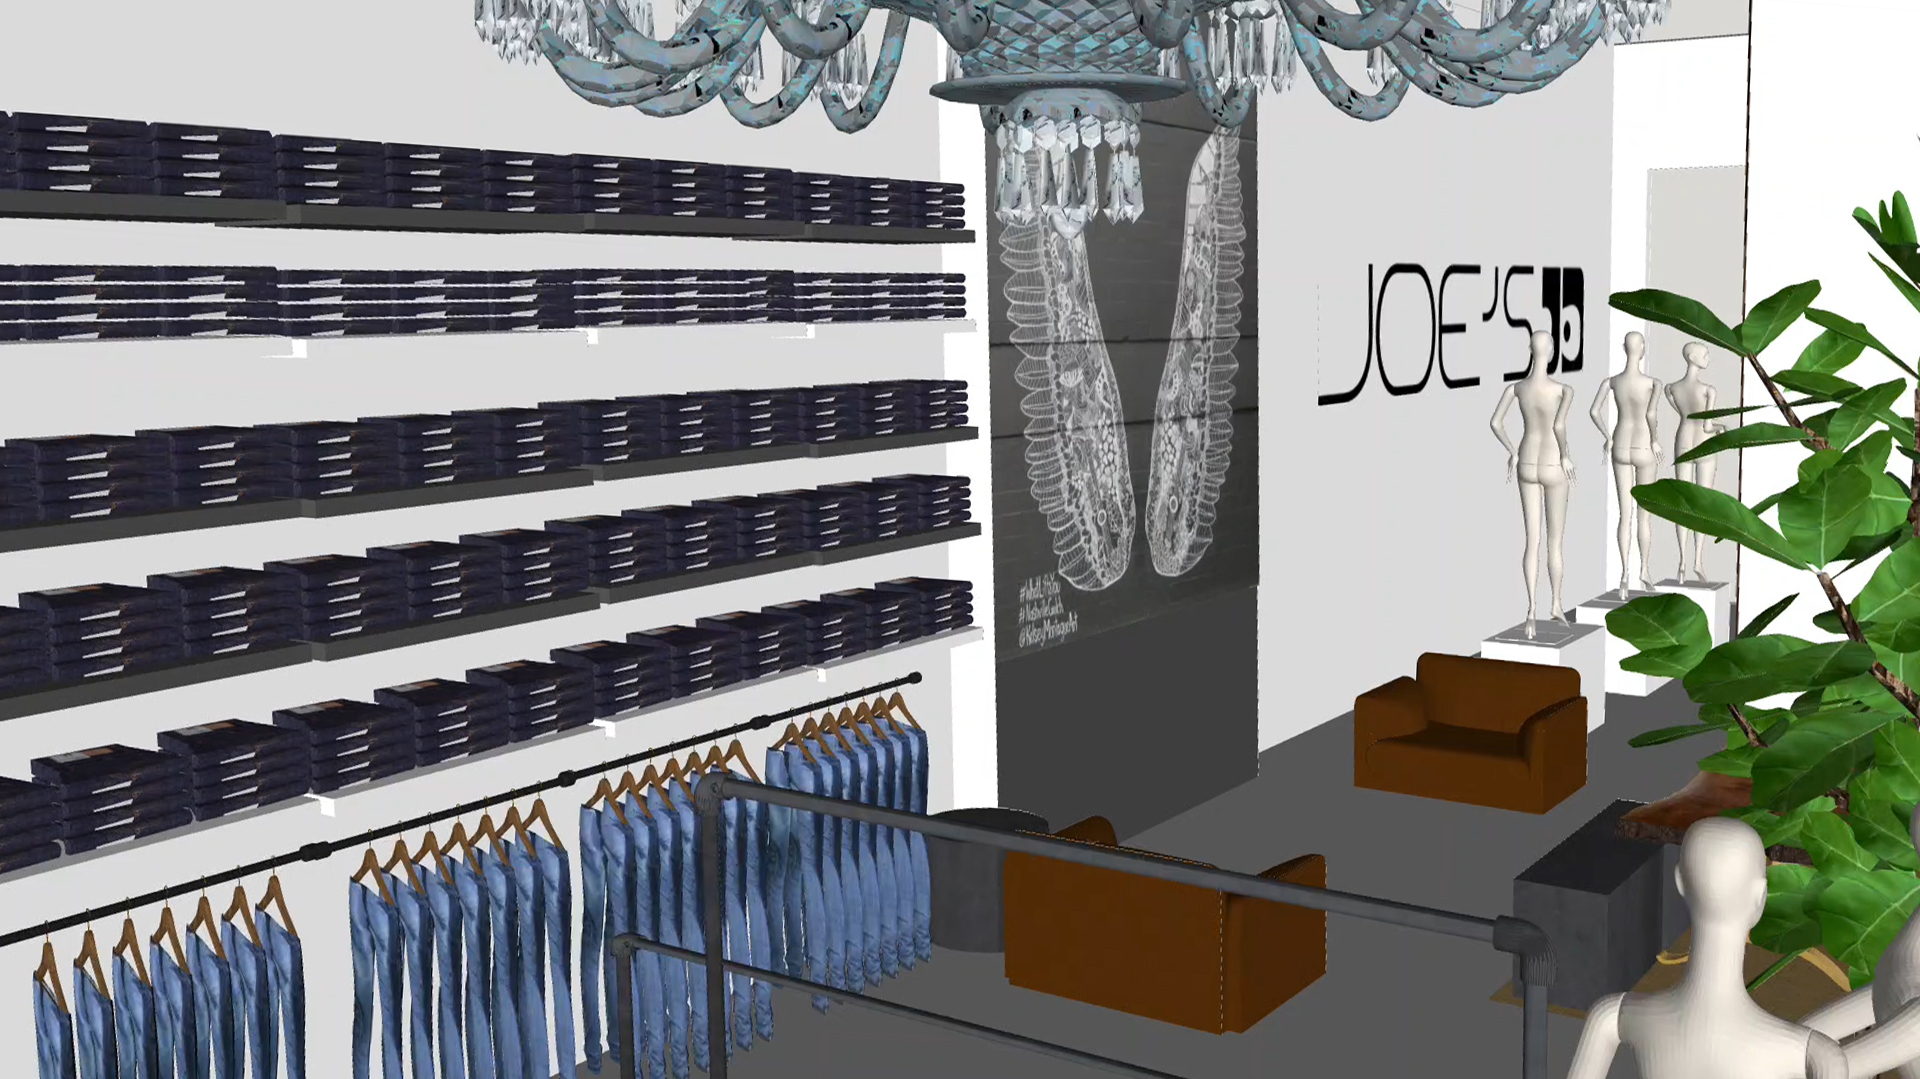 A rendering of the Joe's Jeans flagship at 83 Mercer Street in New York